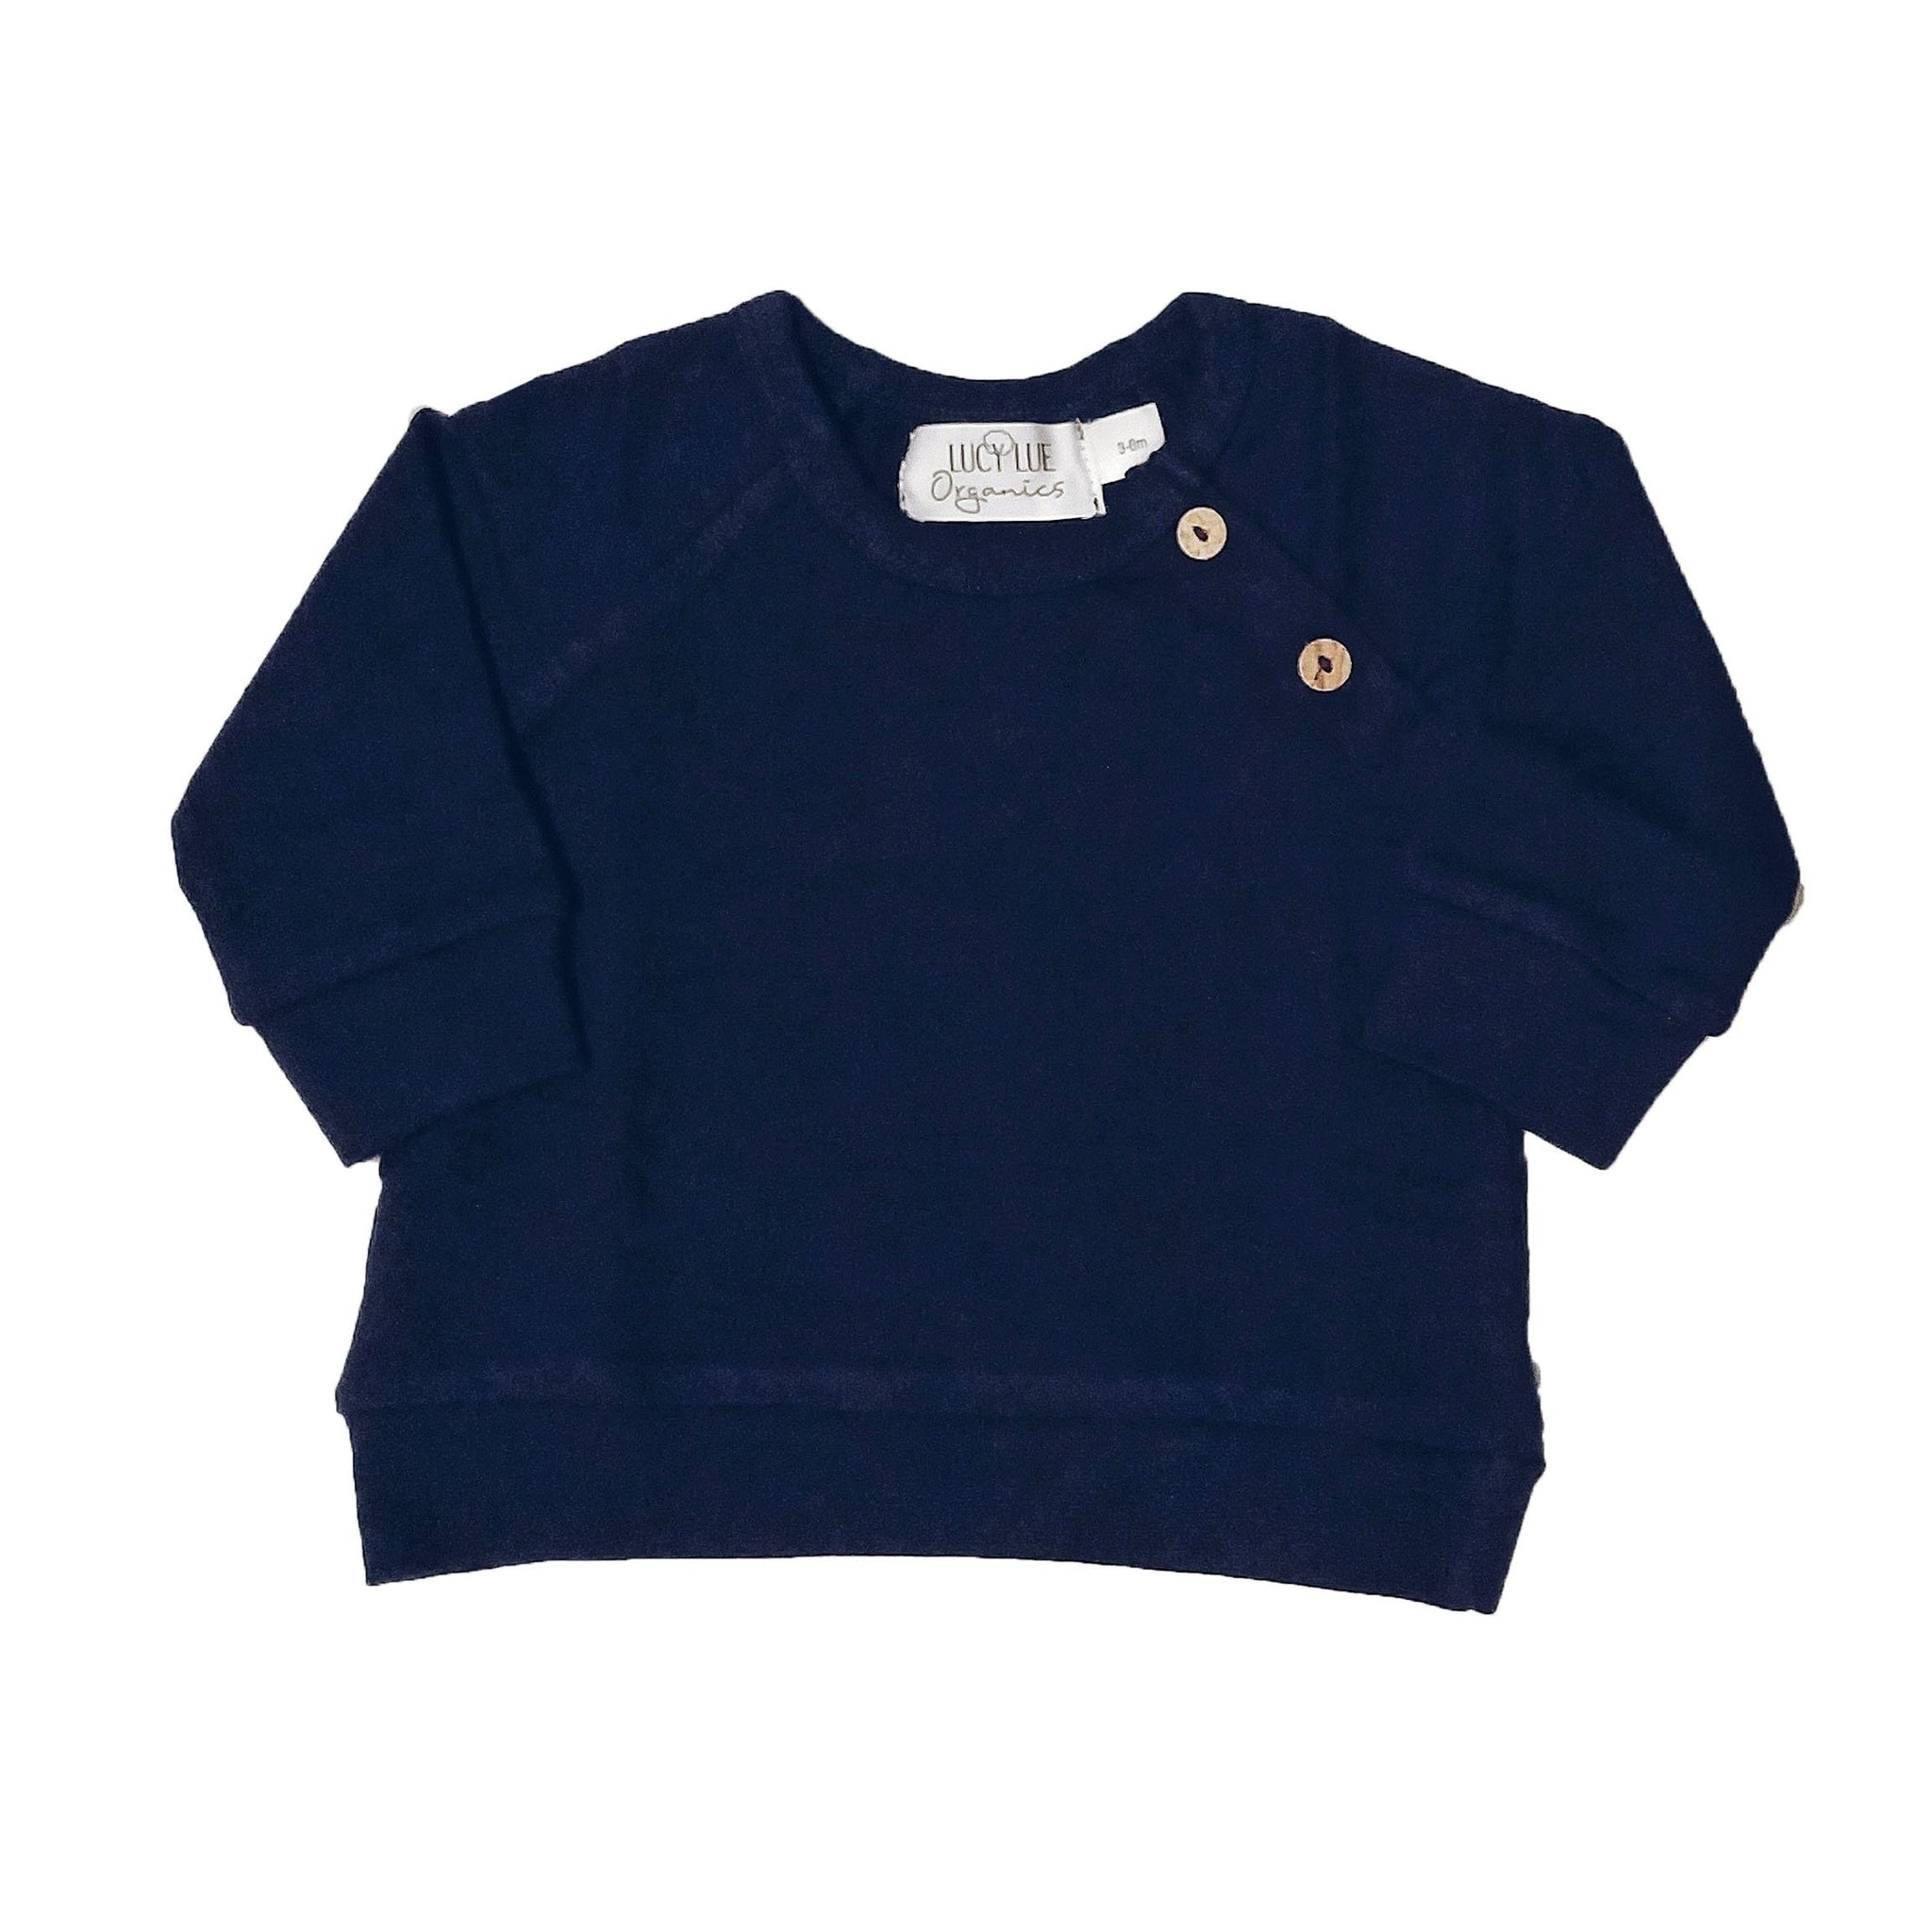 Organic cotton navy blue sweatshirt by Lucy Lue Organics. A favorite baby brand for organic clothes. Pullover baby shirt